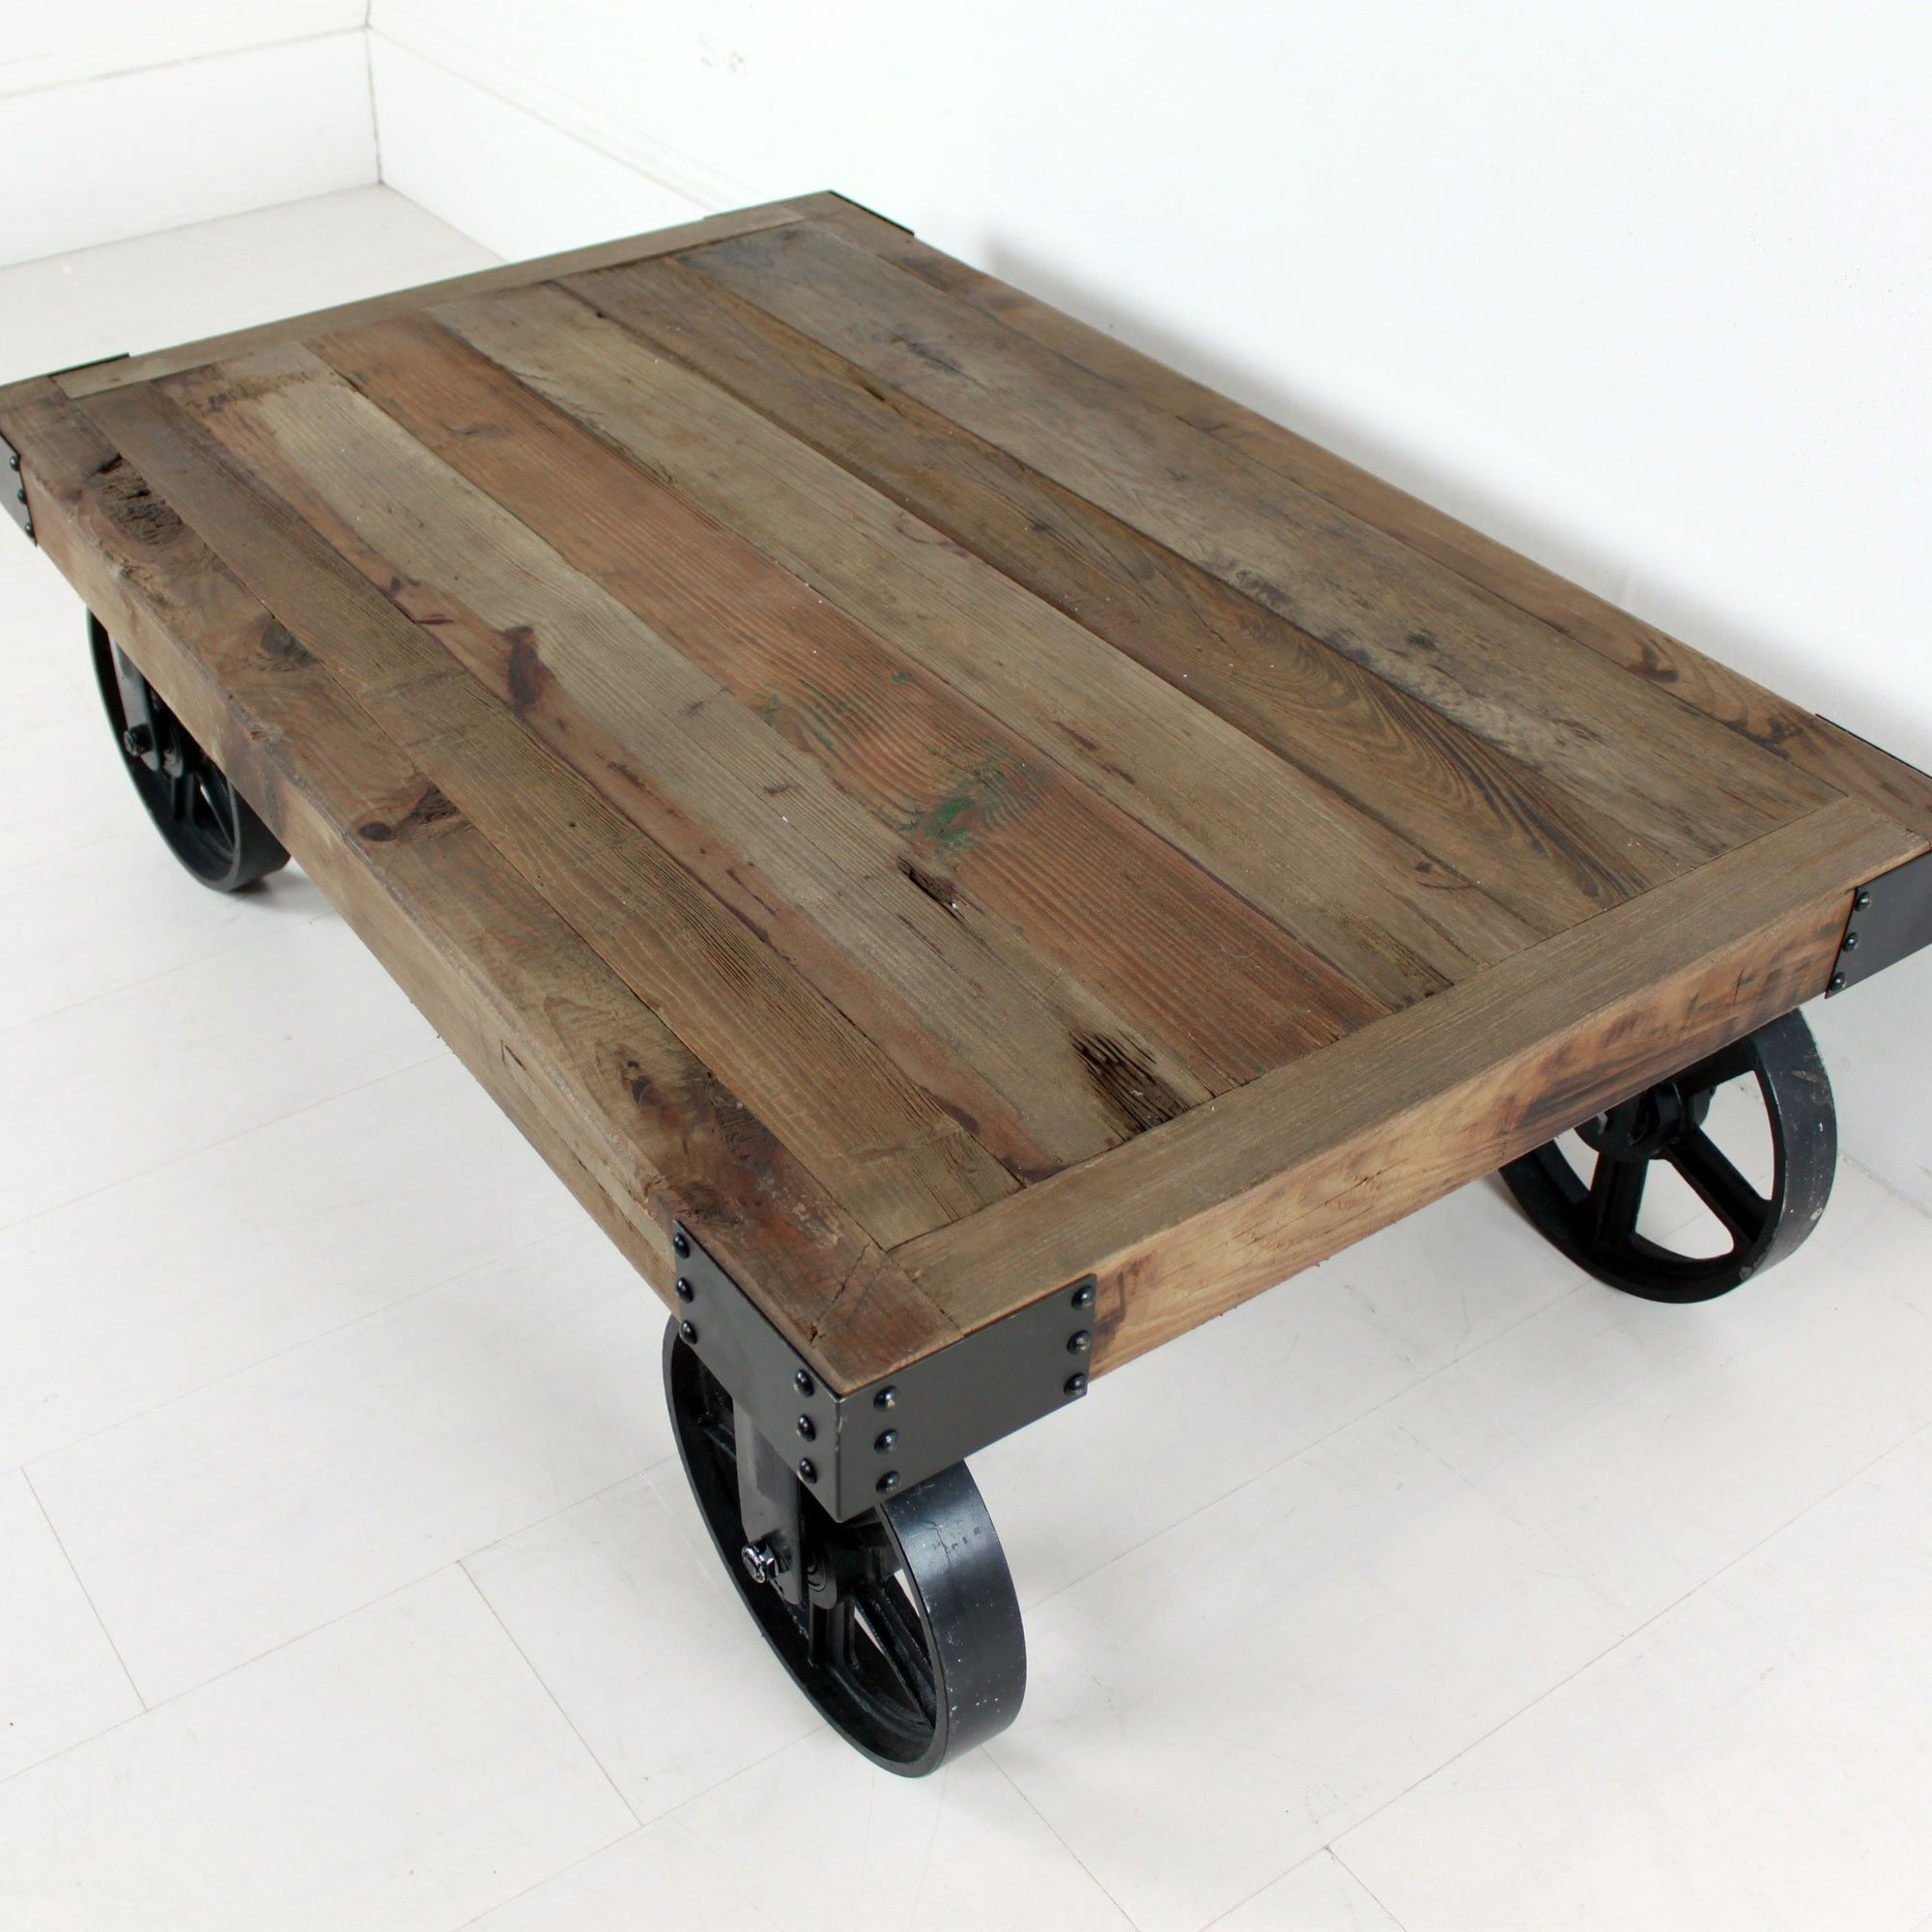 Charmant Industrial Coffee Table With Wheels | Wheeled Coffee Table